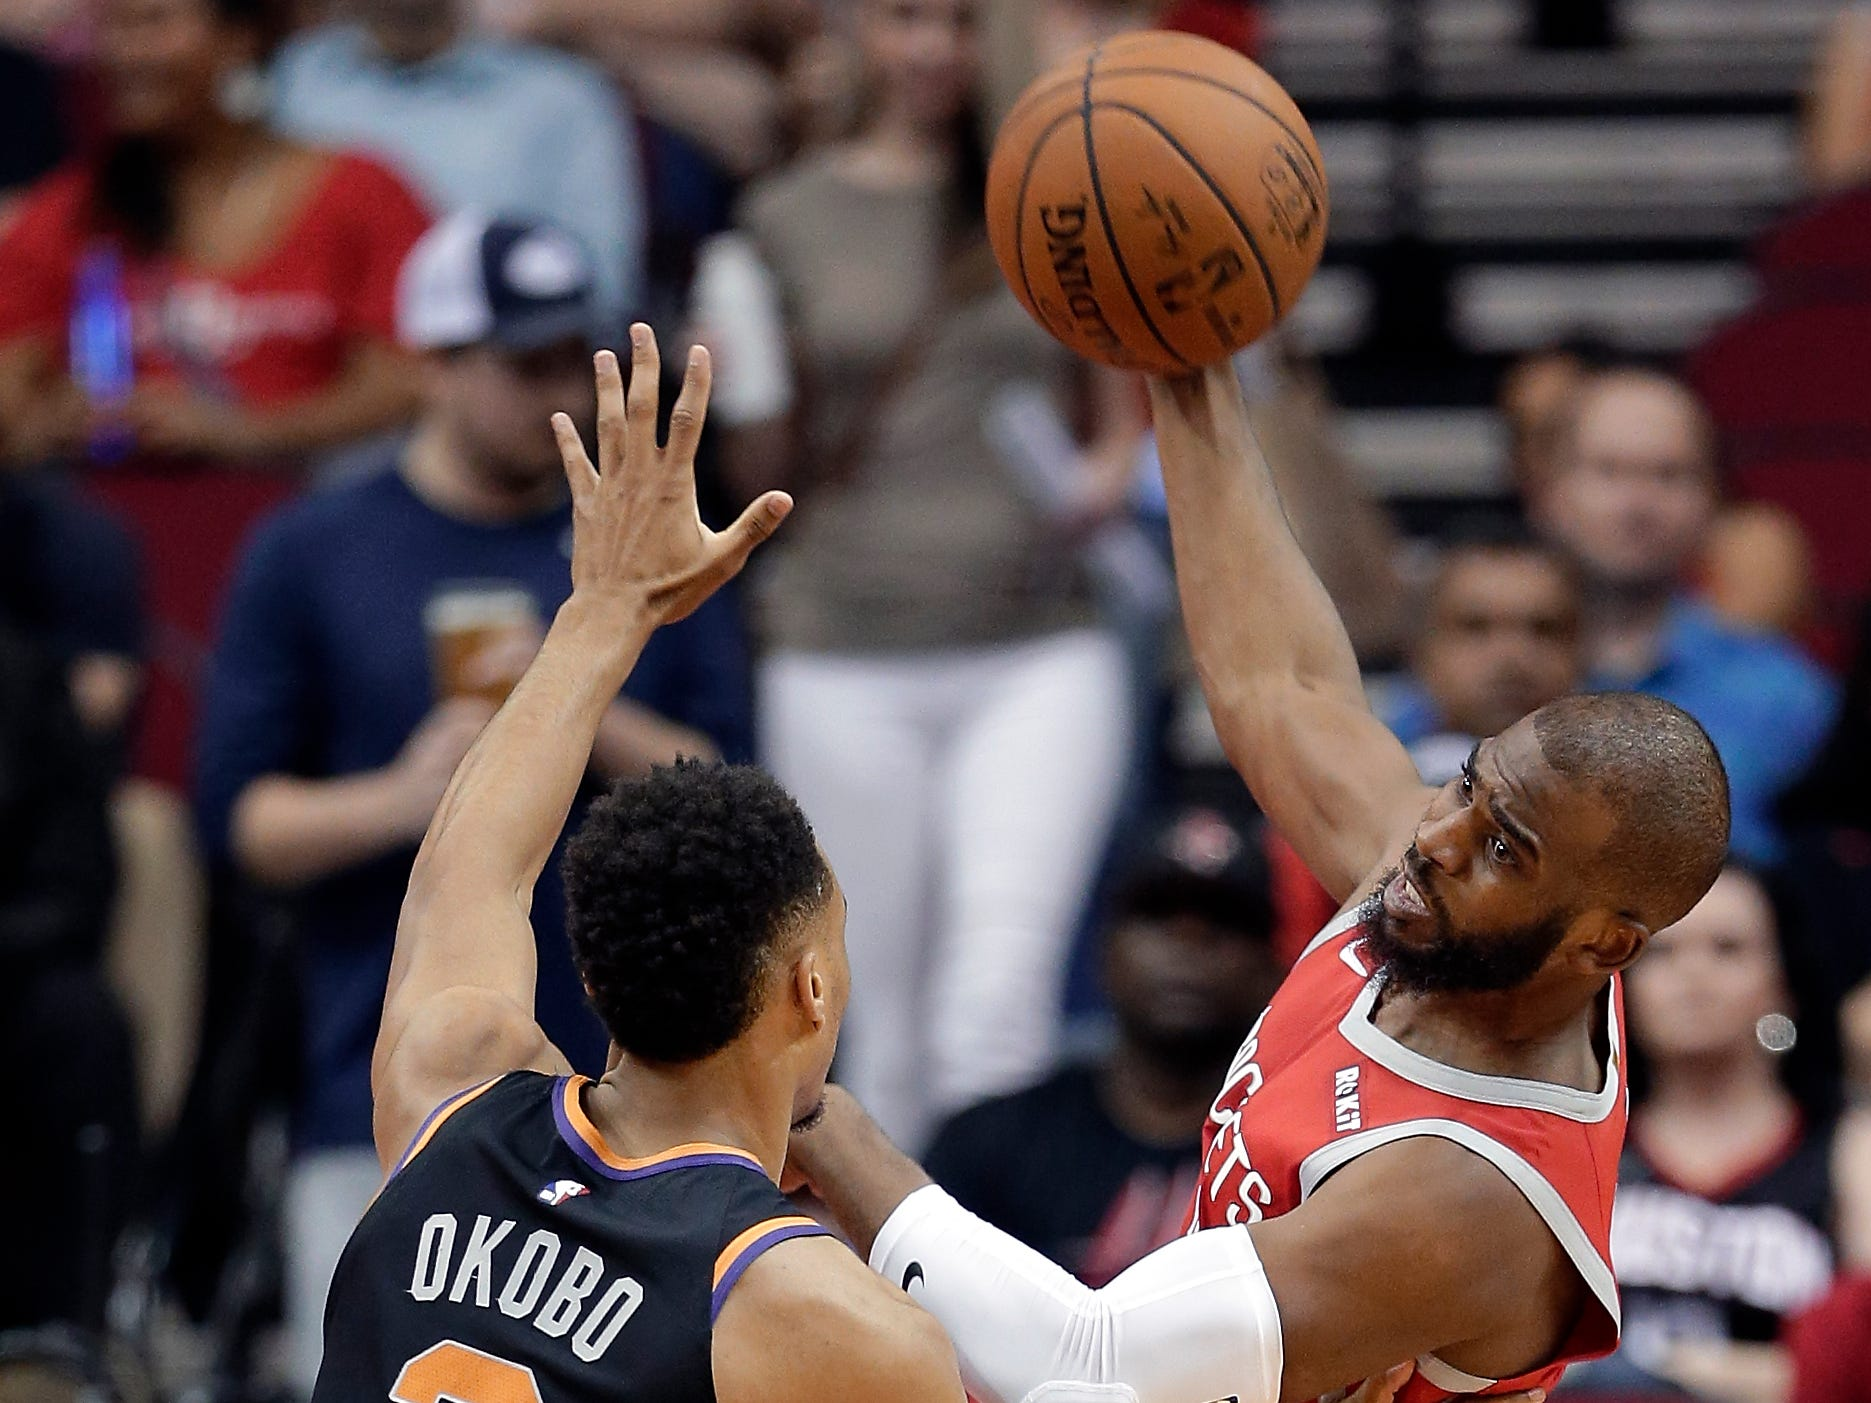 Houston Rockets guard Chris Paul, right, passes the ball over Phoenix Suns guard Elie Okobo (2) during the first half of an NBA basketball game Sunday, April 7, 2019, in Houston. (AP Photo/Michael Wyke)